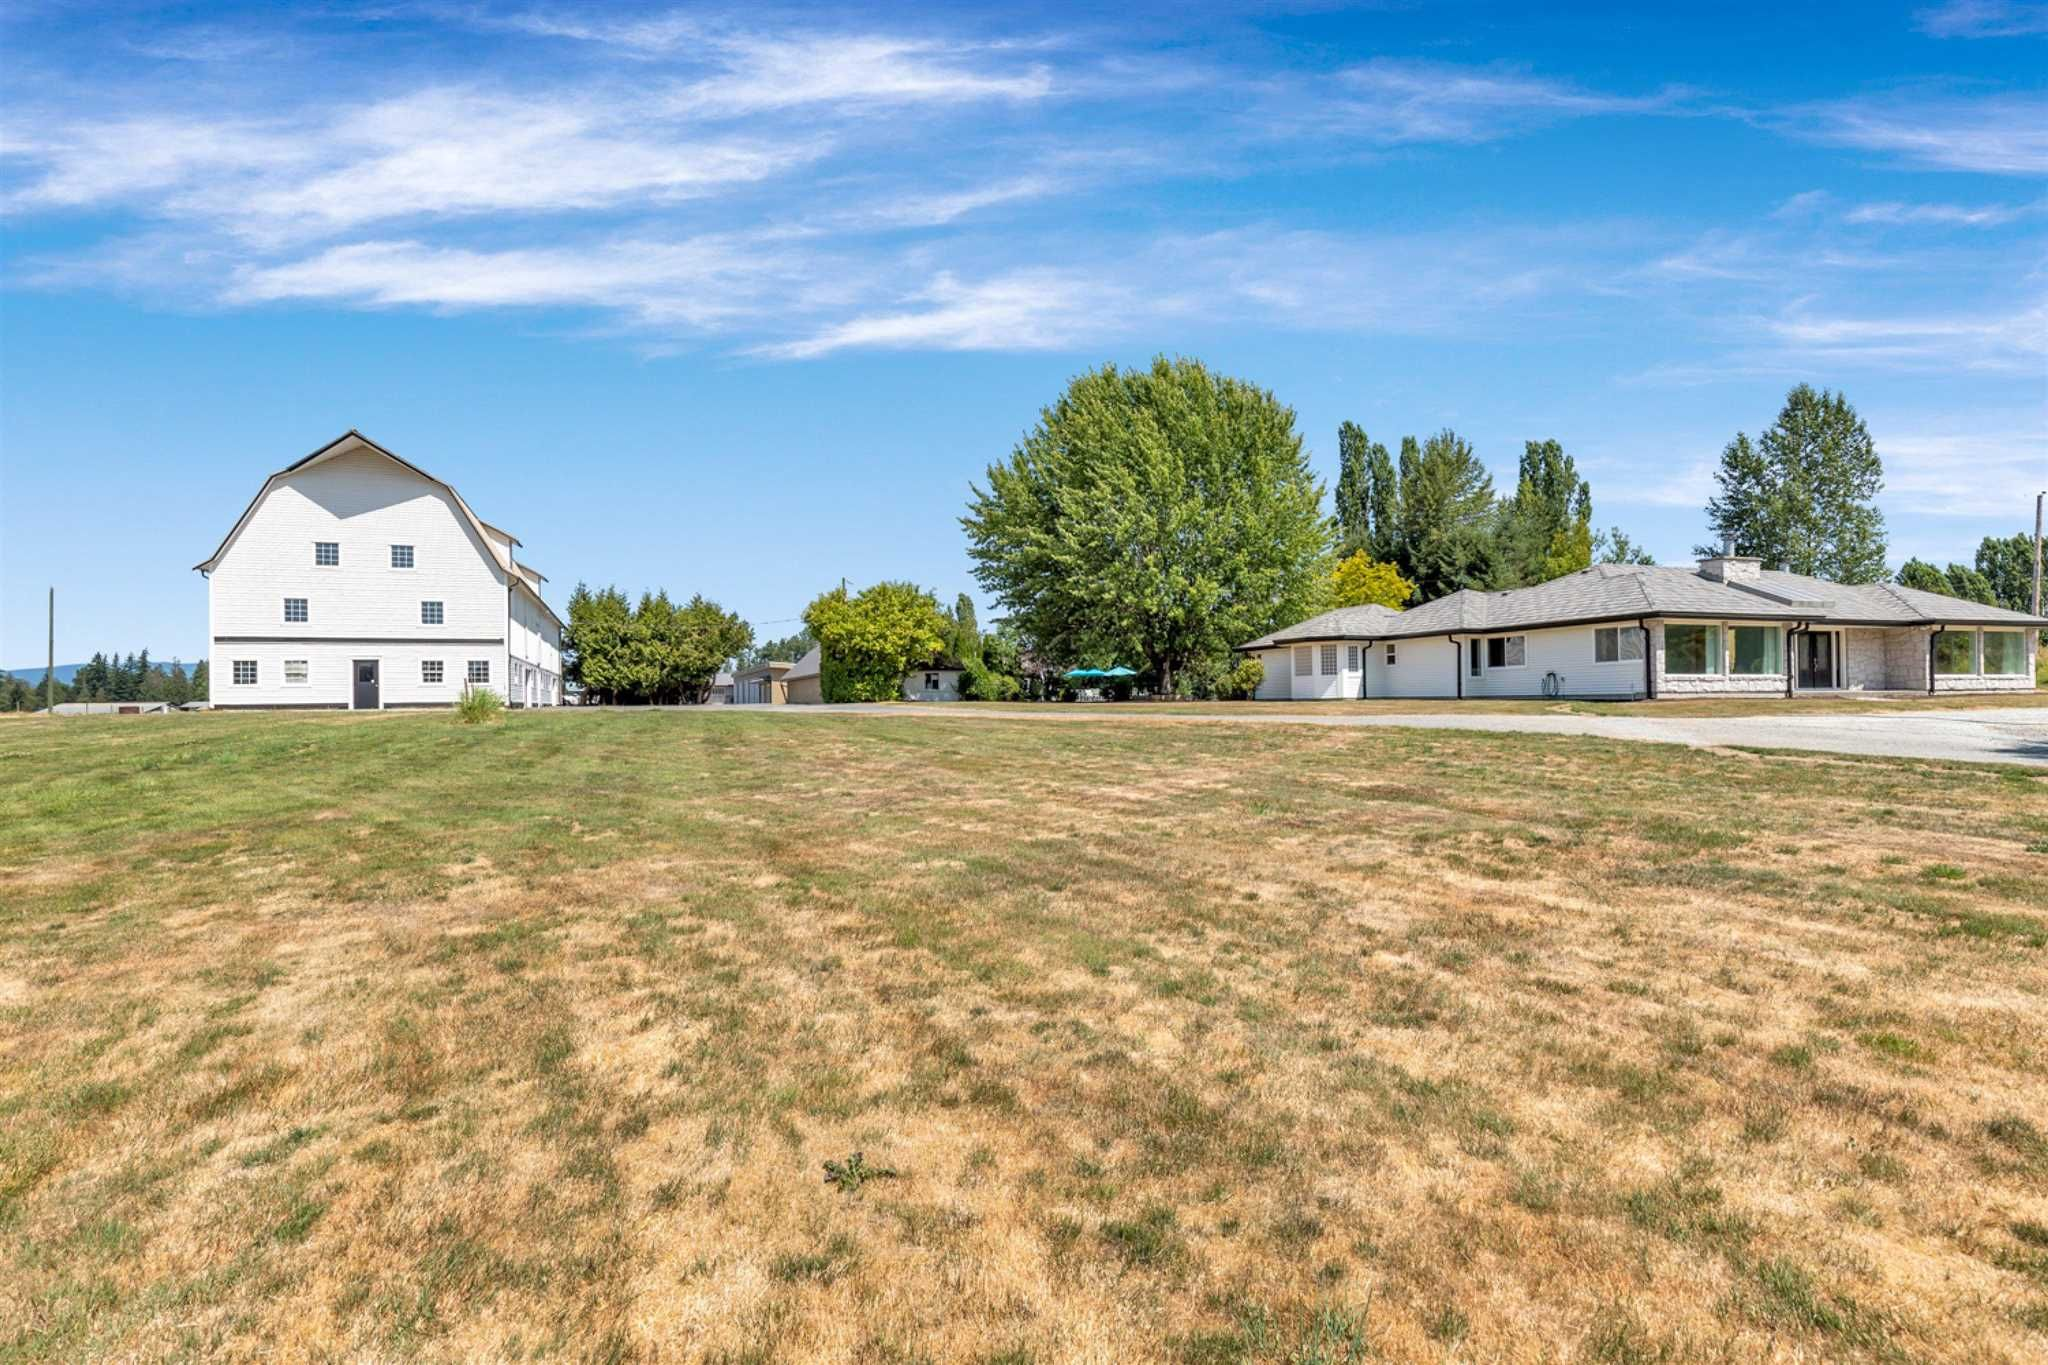 Main Photo: 22995 64 Avenue in Langley: Salmon River House for sale : MLS®# R2604644